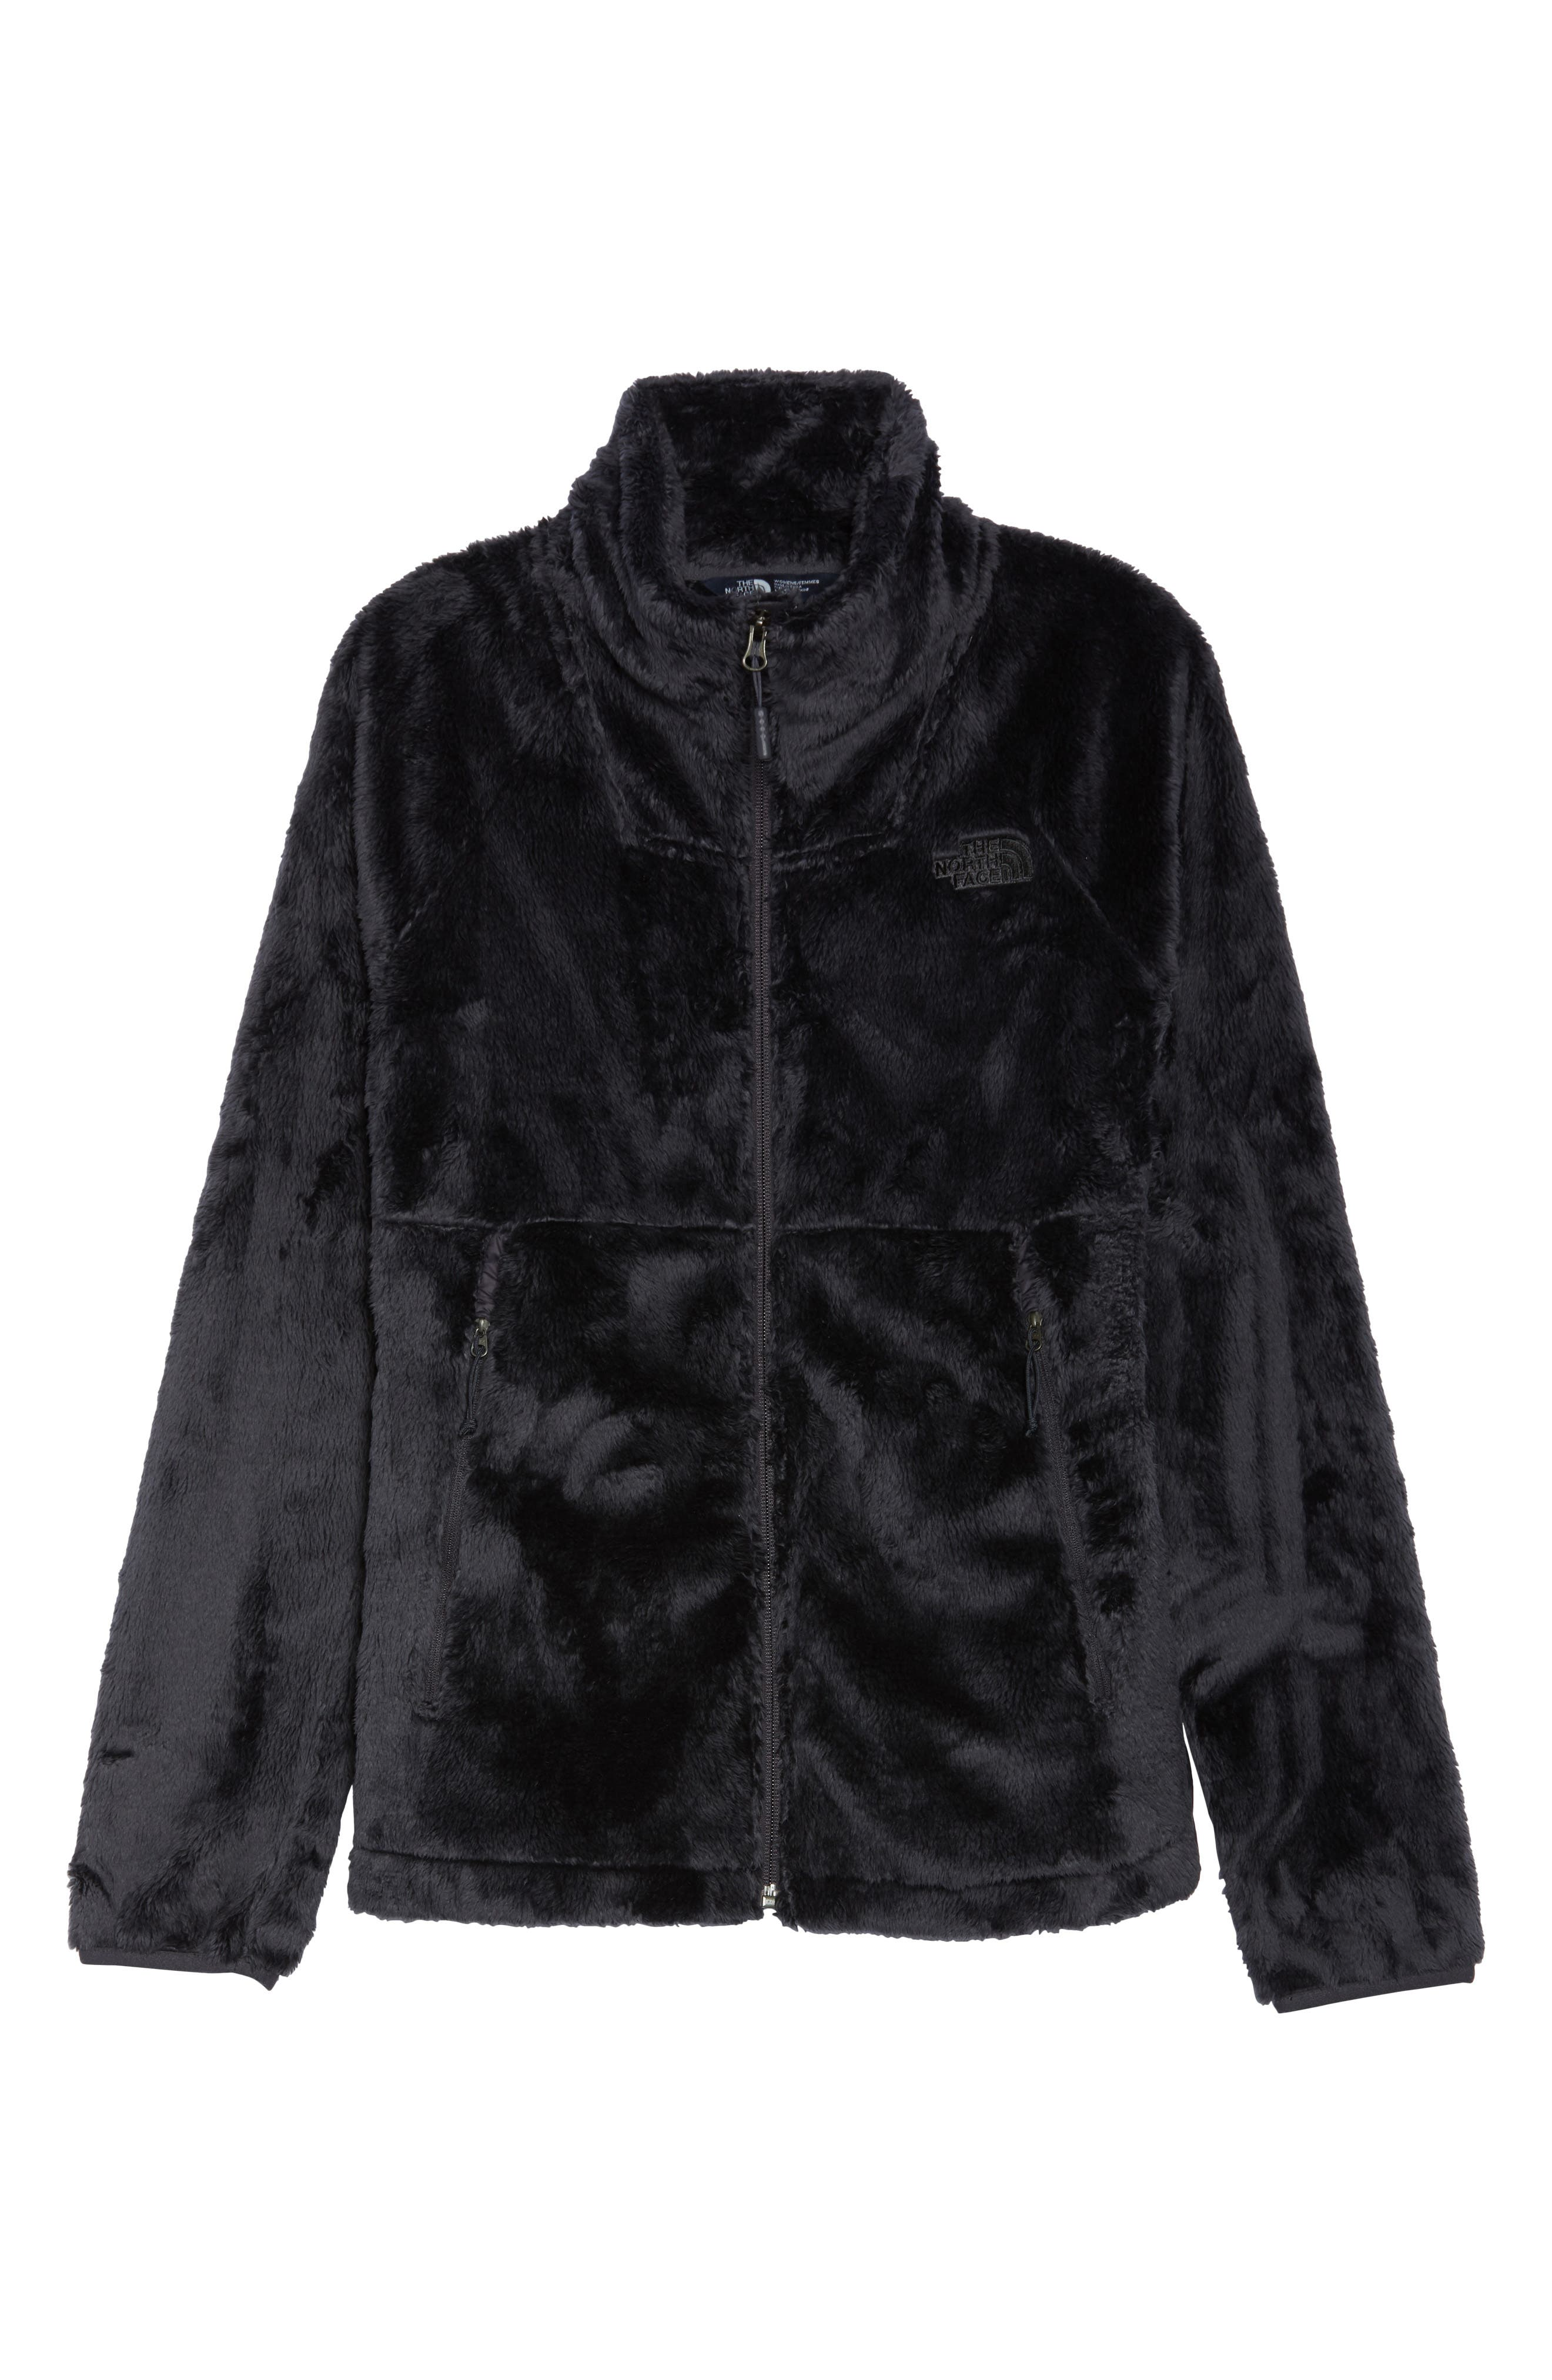 THE NORTH FACE, Osito Sport Hybrid Jacket, Alternate thumbnail 6, color, WEATHERED BLACK